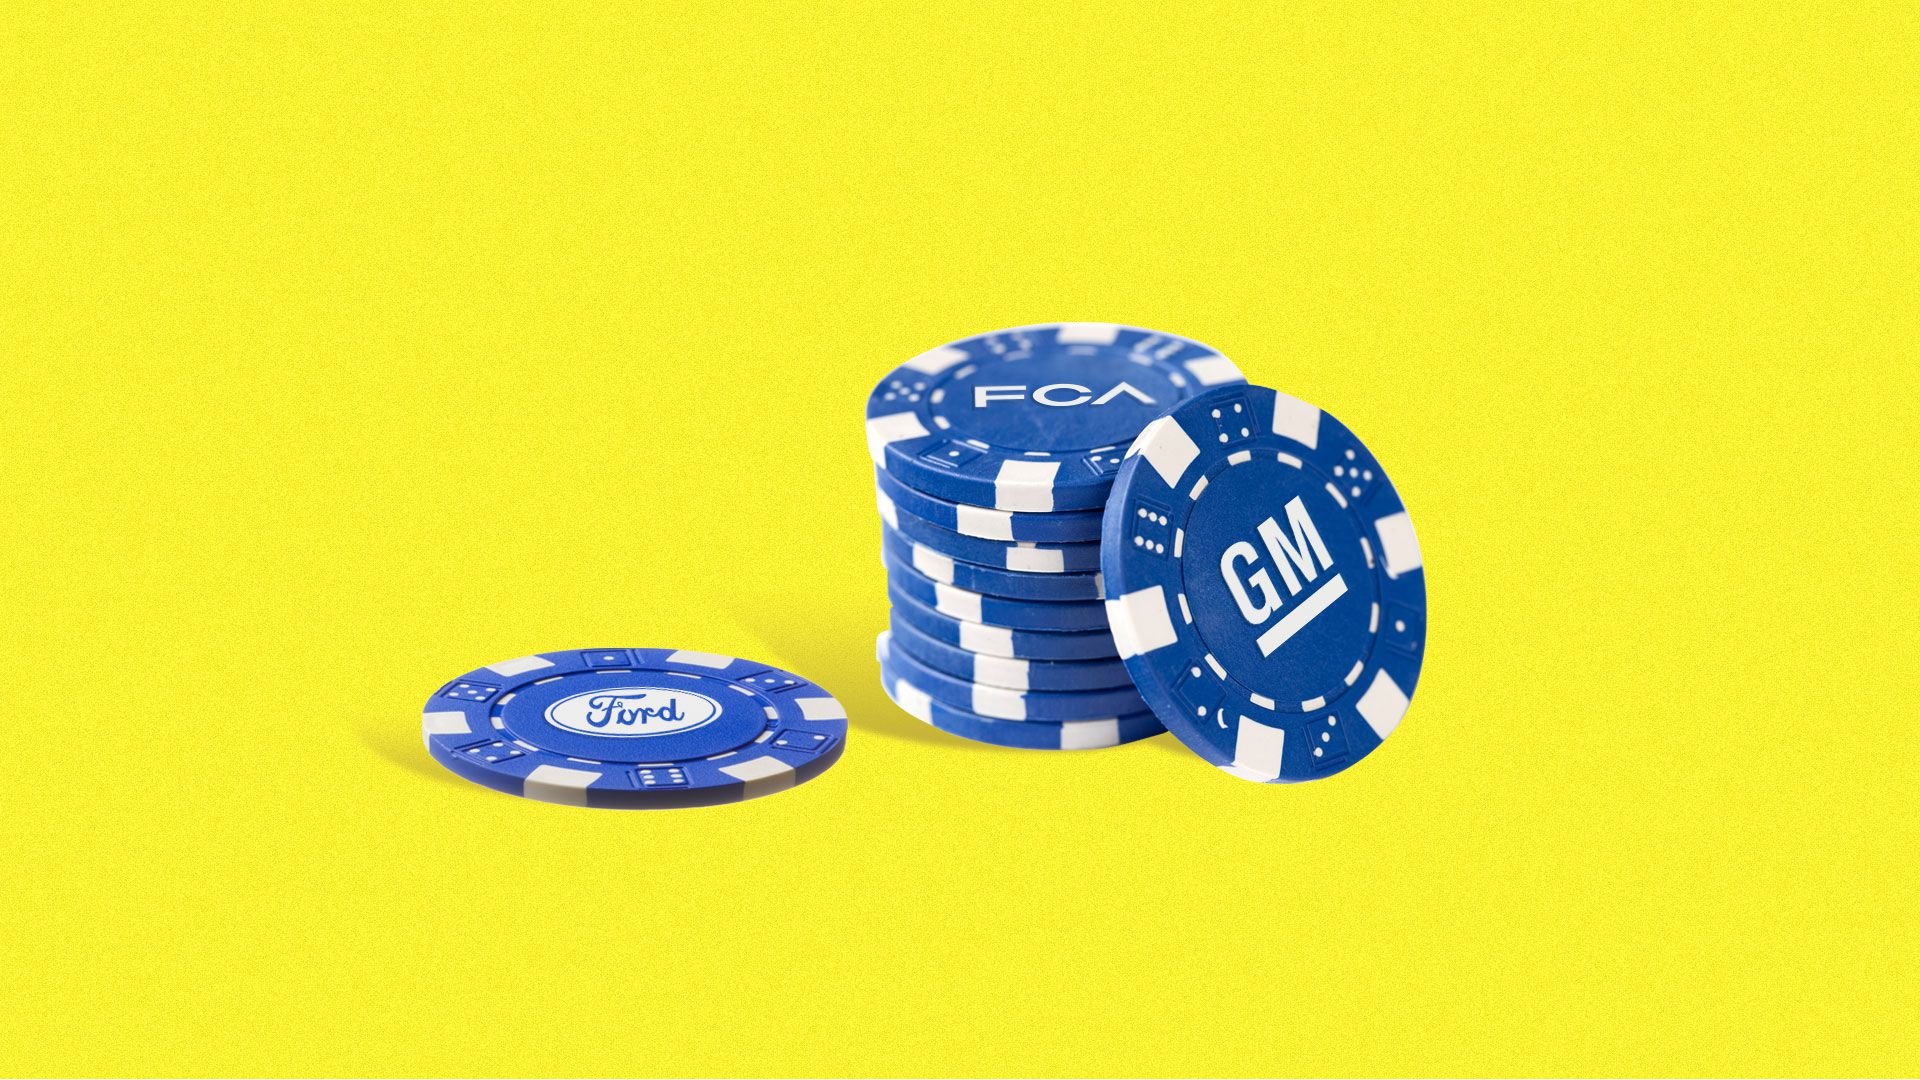 In this illustration, a pile of blue gambling chips have the GM logo on them.